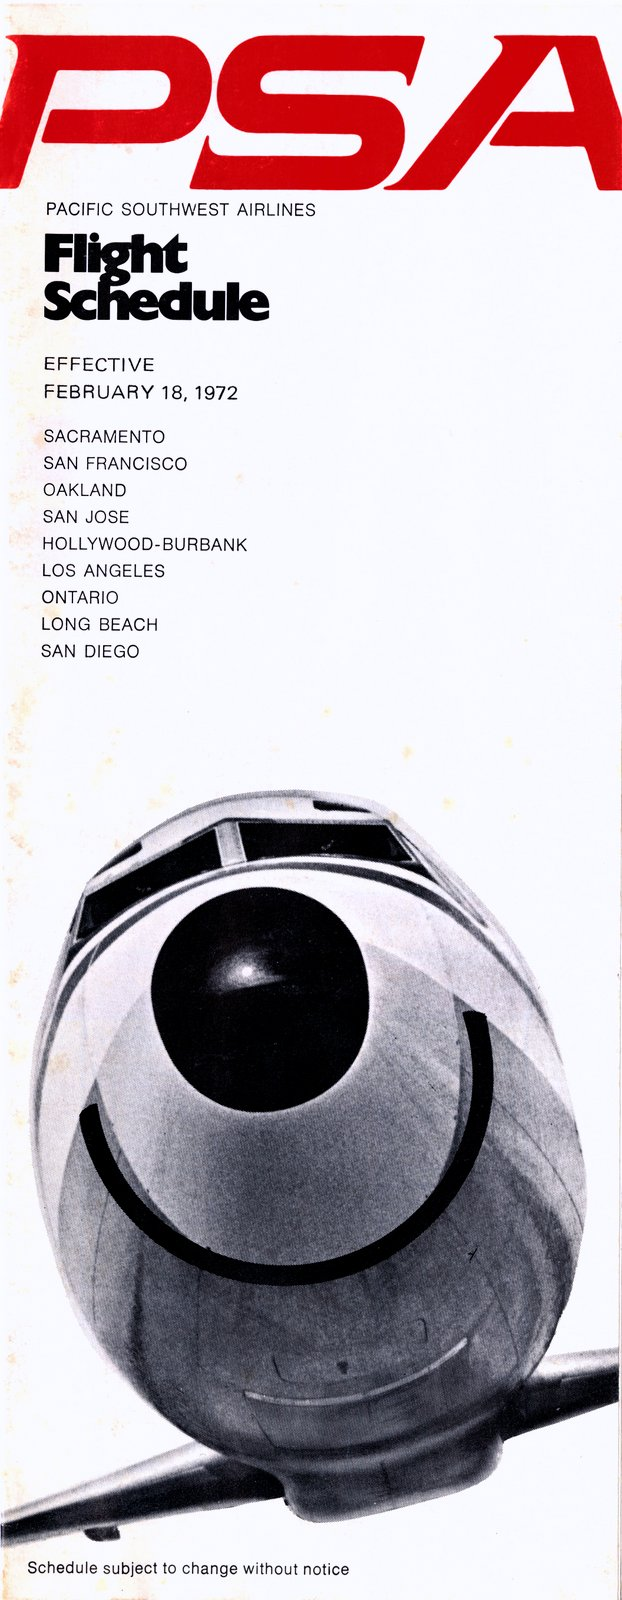 Pacific Southwest Airlines Flight schedule for 1972